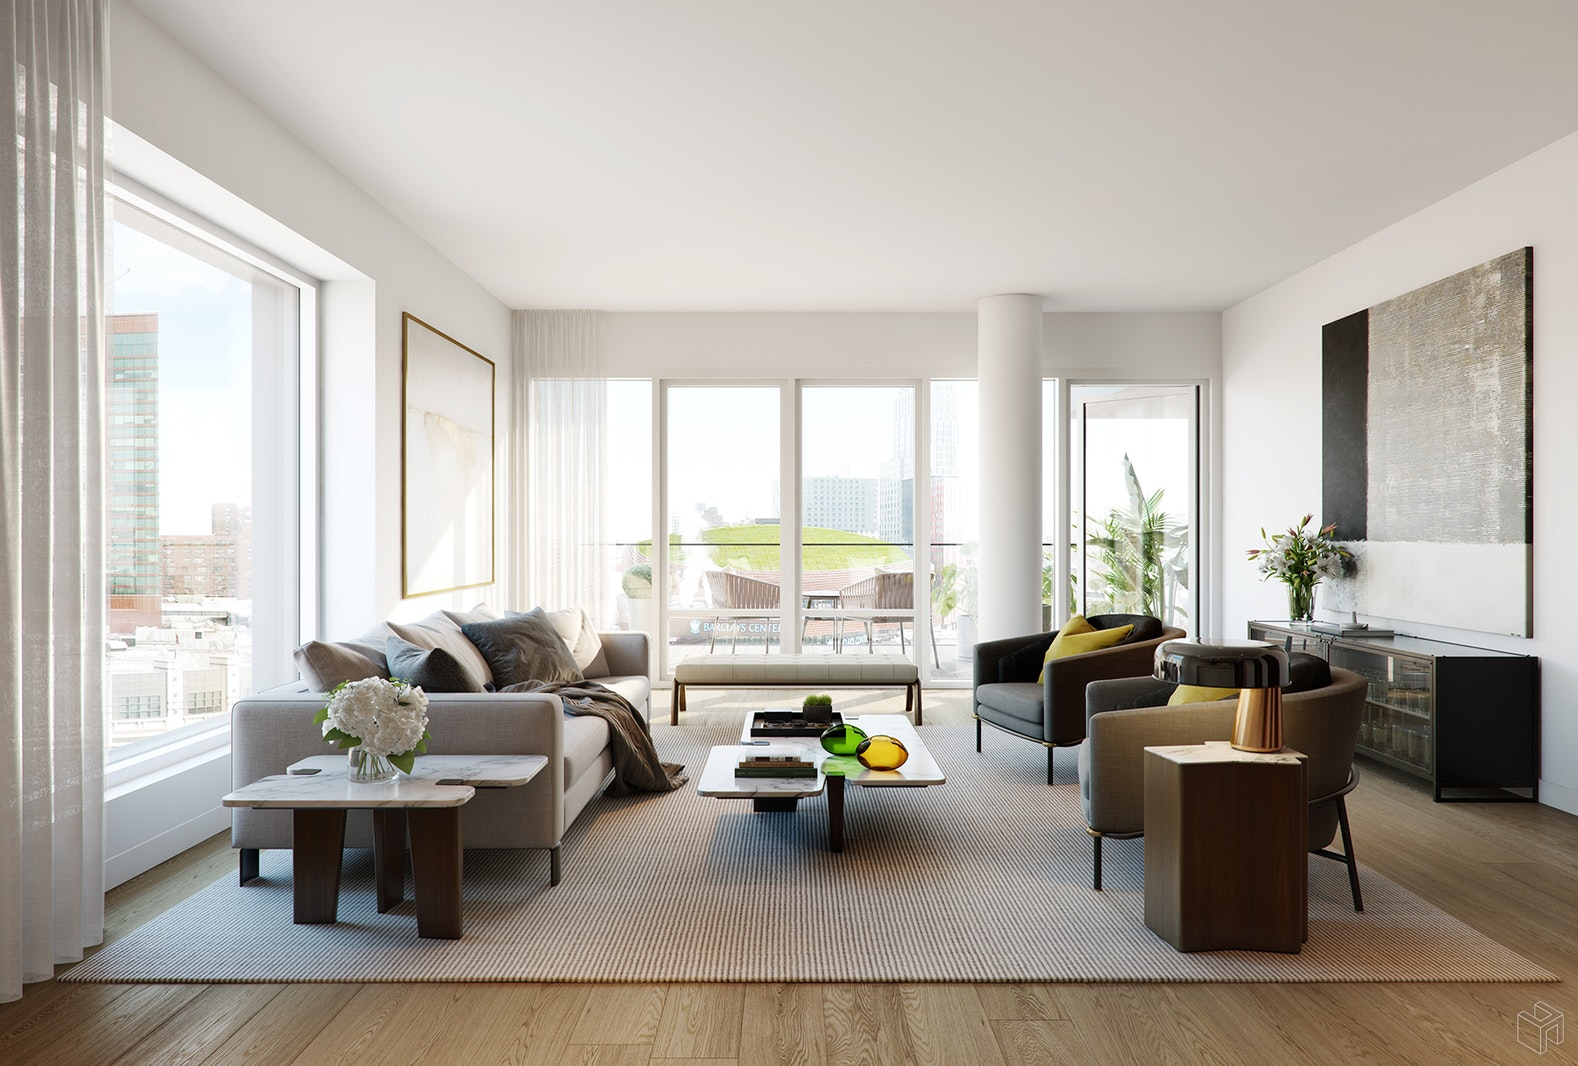 561 Pacific Street 1002, Boerum Hill, Brooklyn, NY, 11217, $1,925,000, Property For Sale, Halstead Real Estate, Photo 1